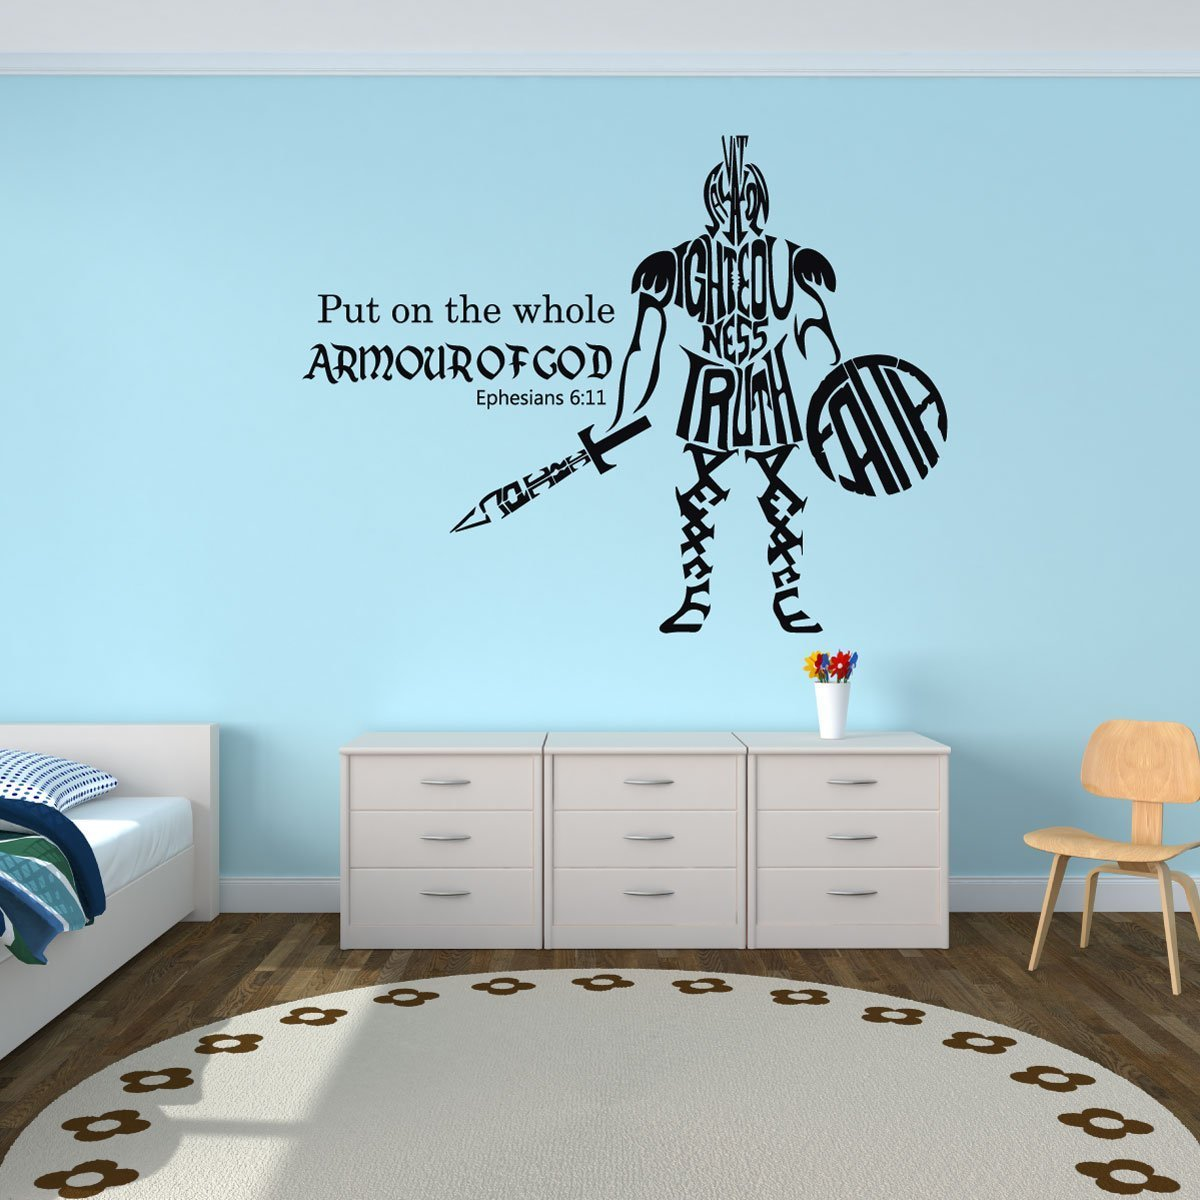 Whole Armor of God - Ephesians 6:11 - Bible Verse Wall Decals, Scripture Wall Art